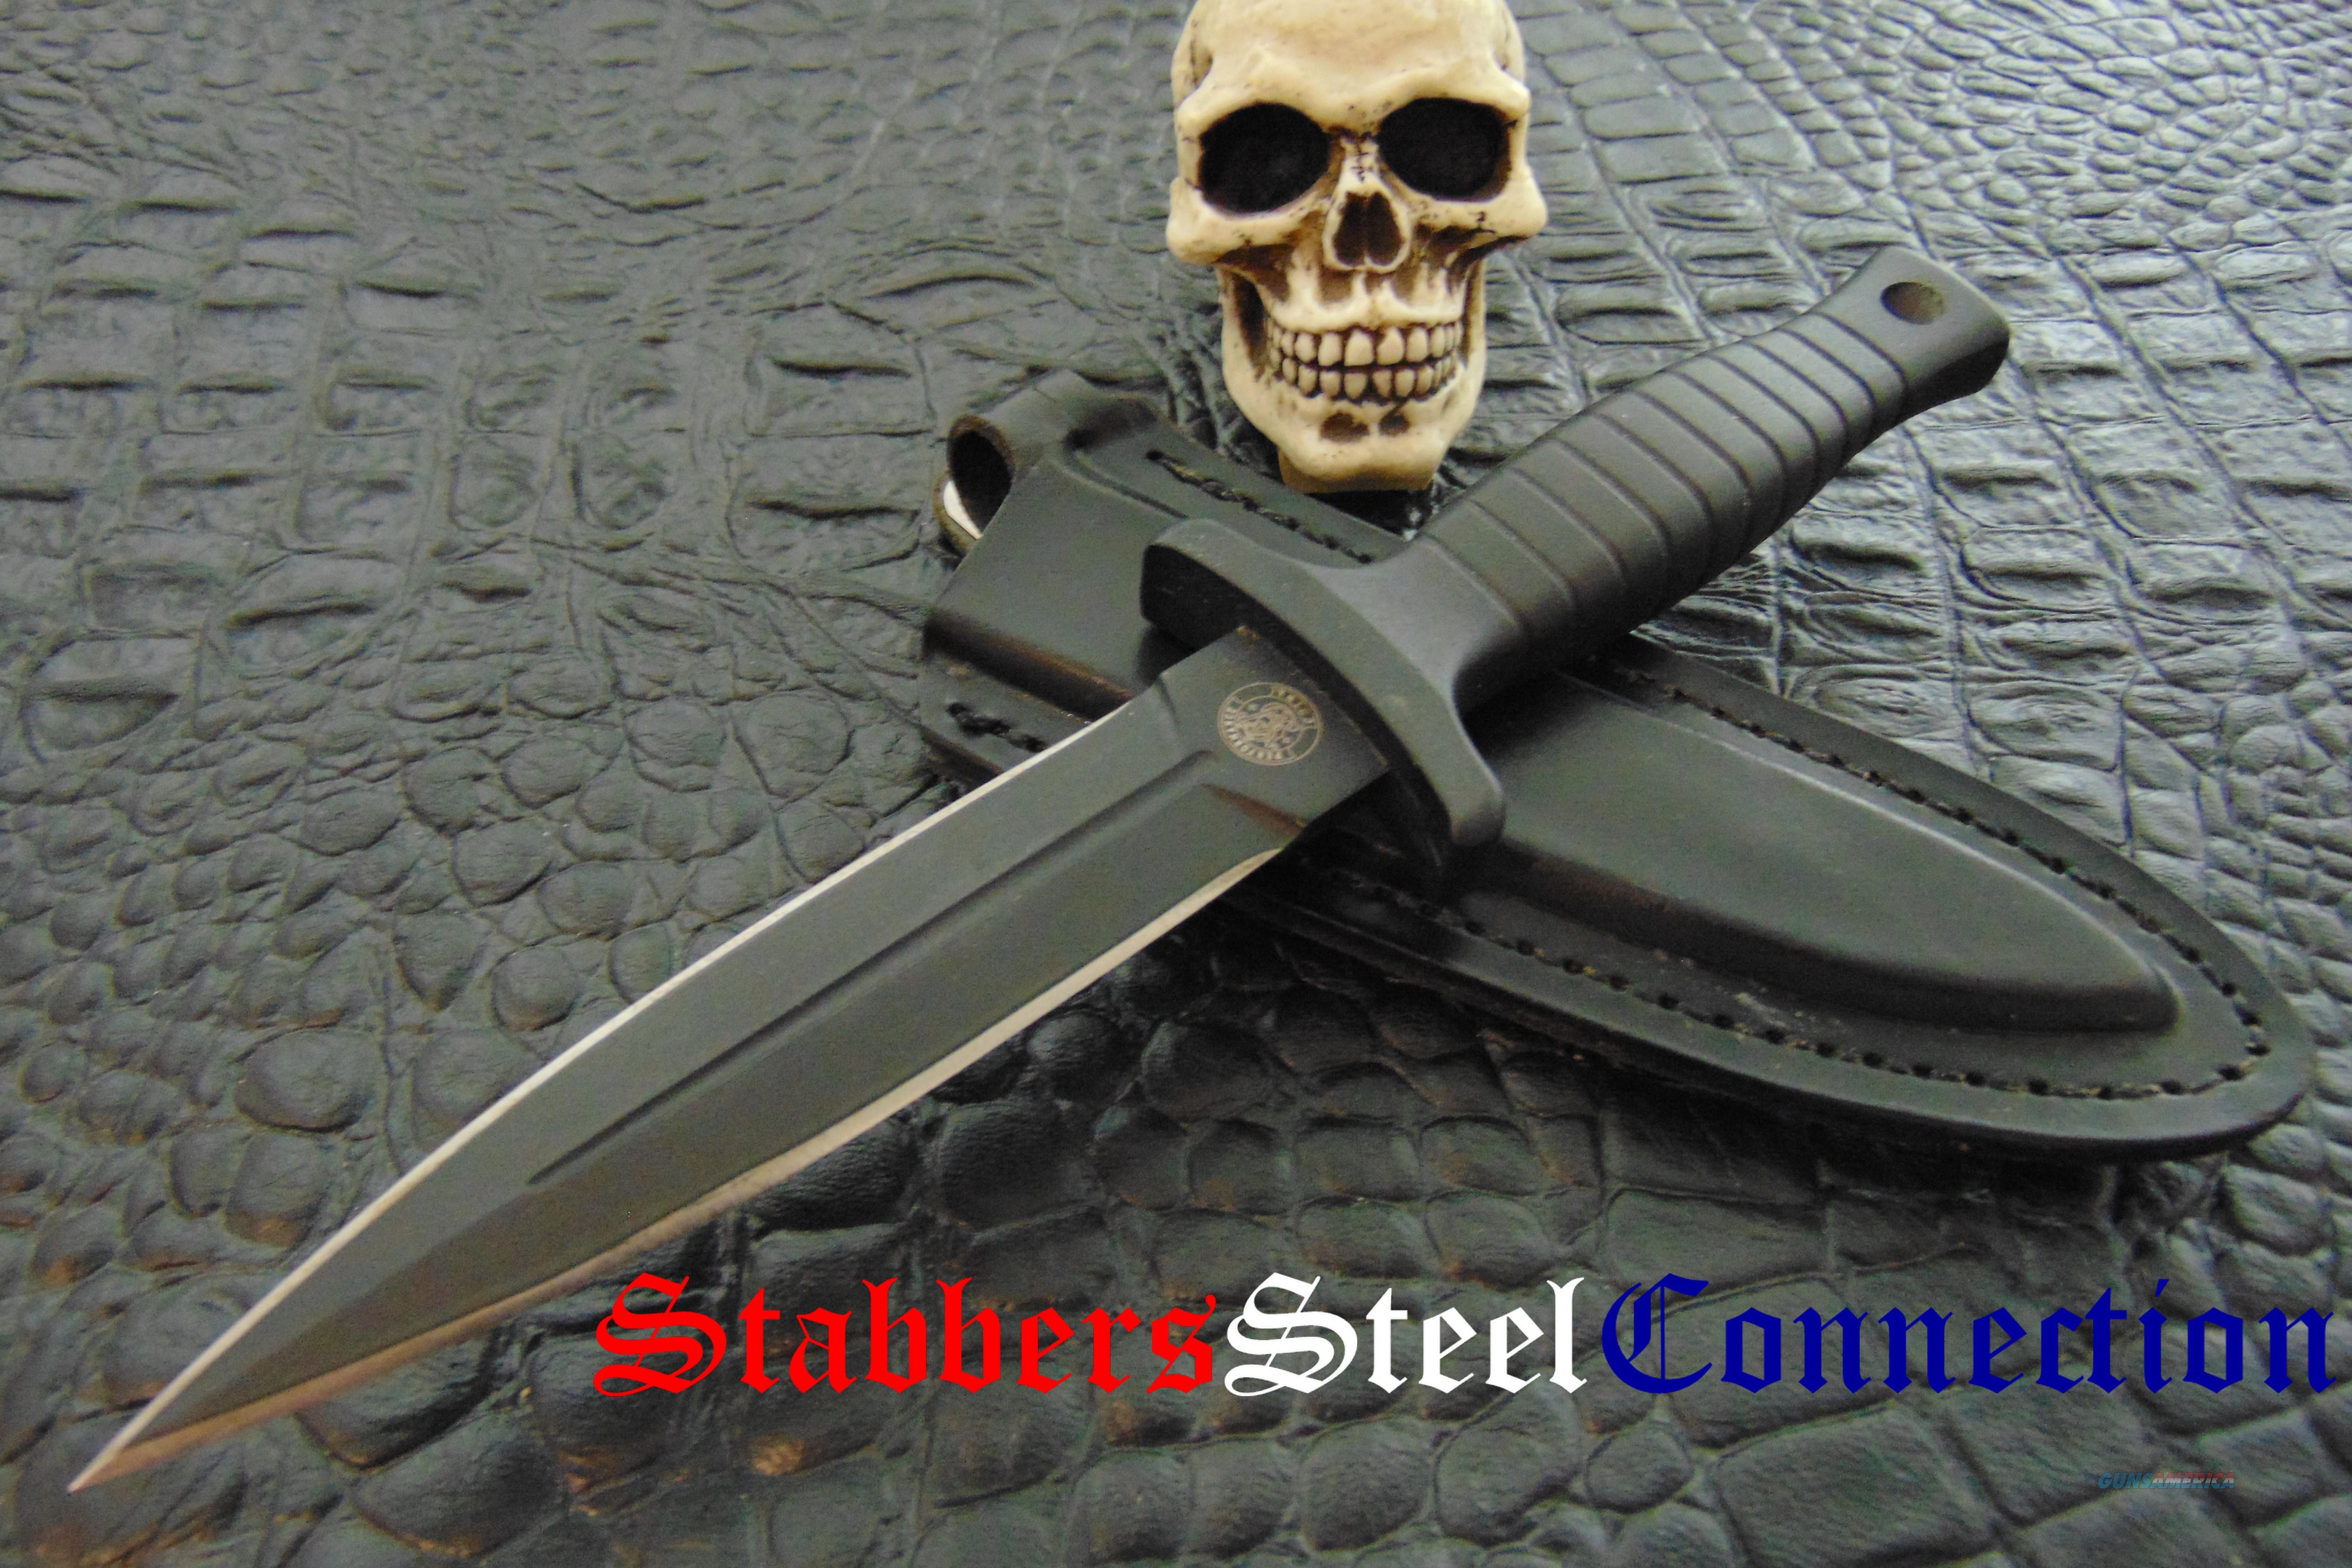 Smith & Wesson Knives HRT Dagger / Boot Knife  Non-Guns > Knives/Swords > Knives > Fixed Blade > Hand Made